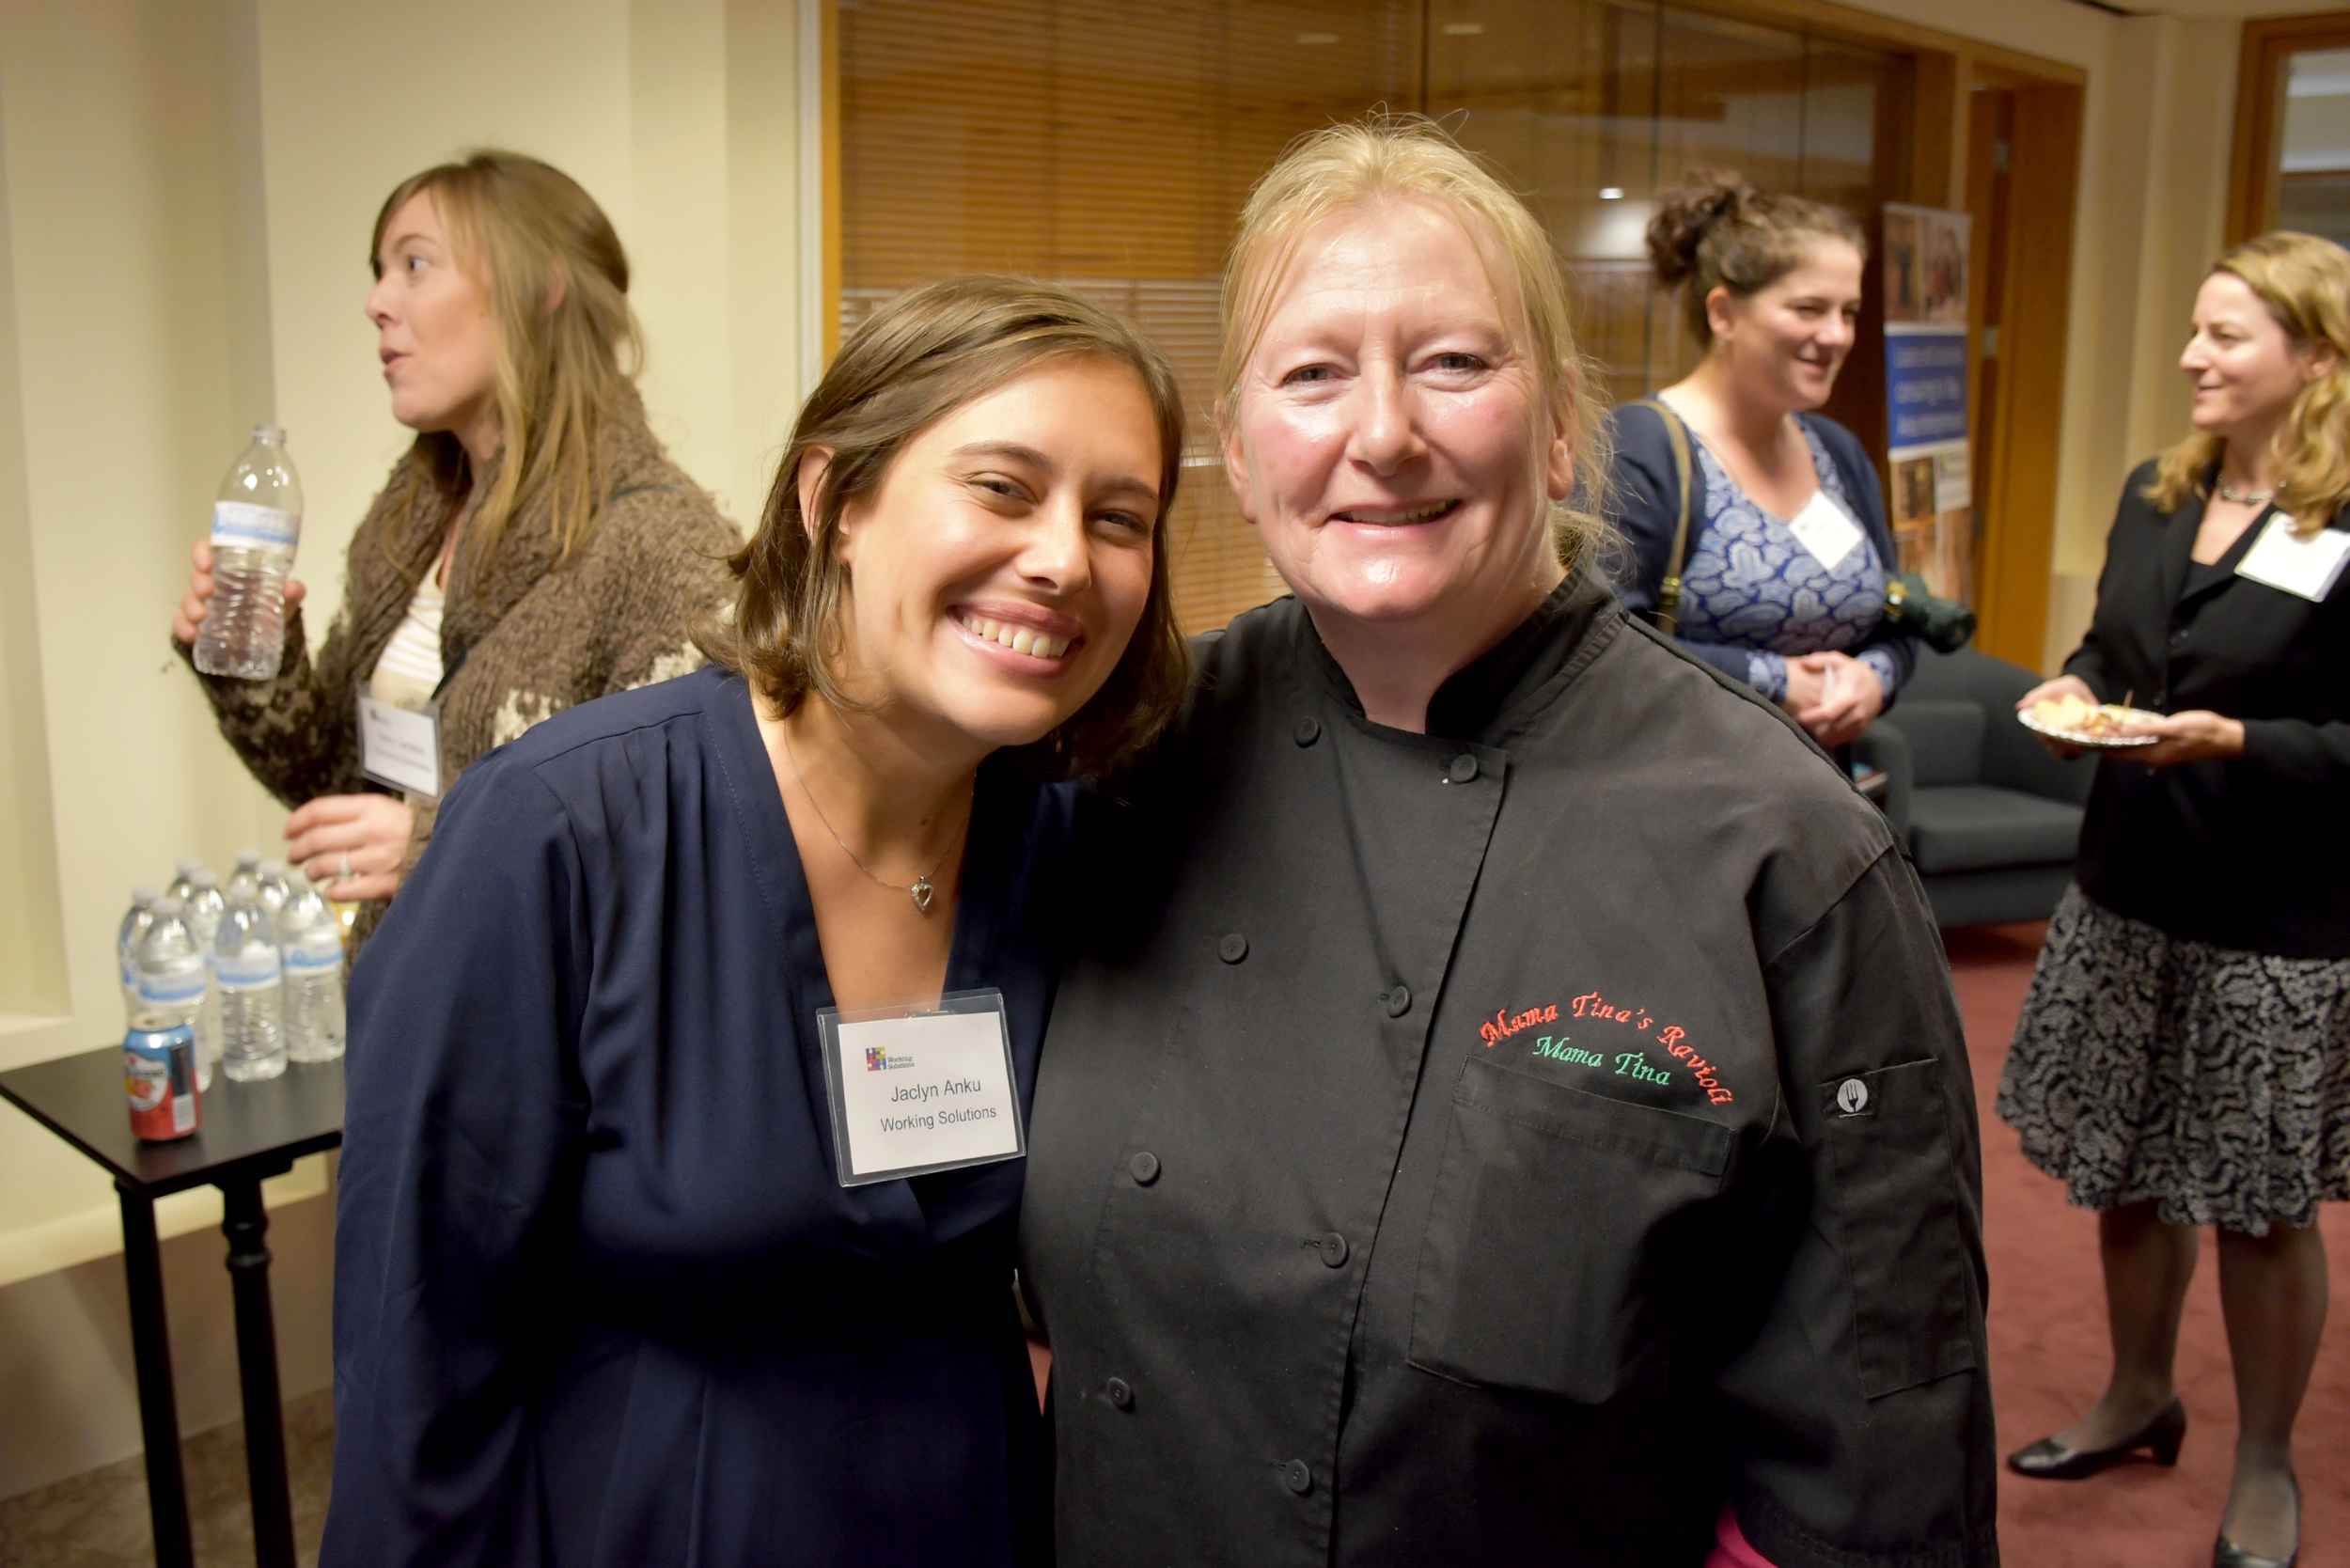 Working Solutions Business Consulting Officer Jaclyn Anku and client Tina Eliason, owner of Mama Tina's Ravioli